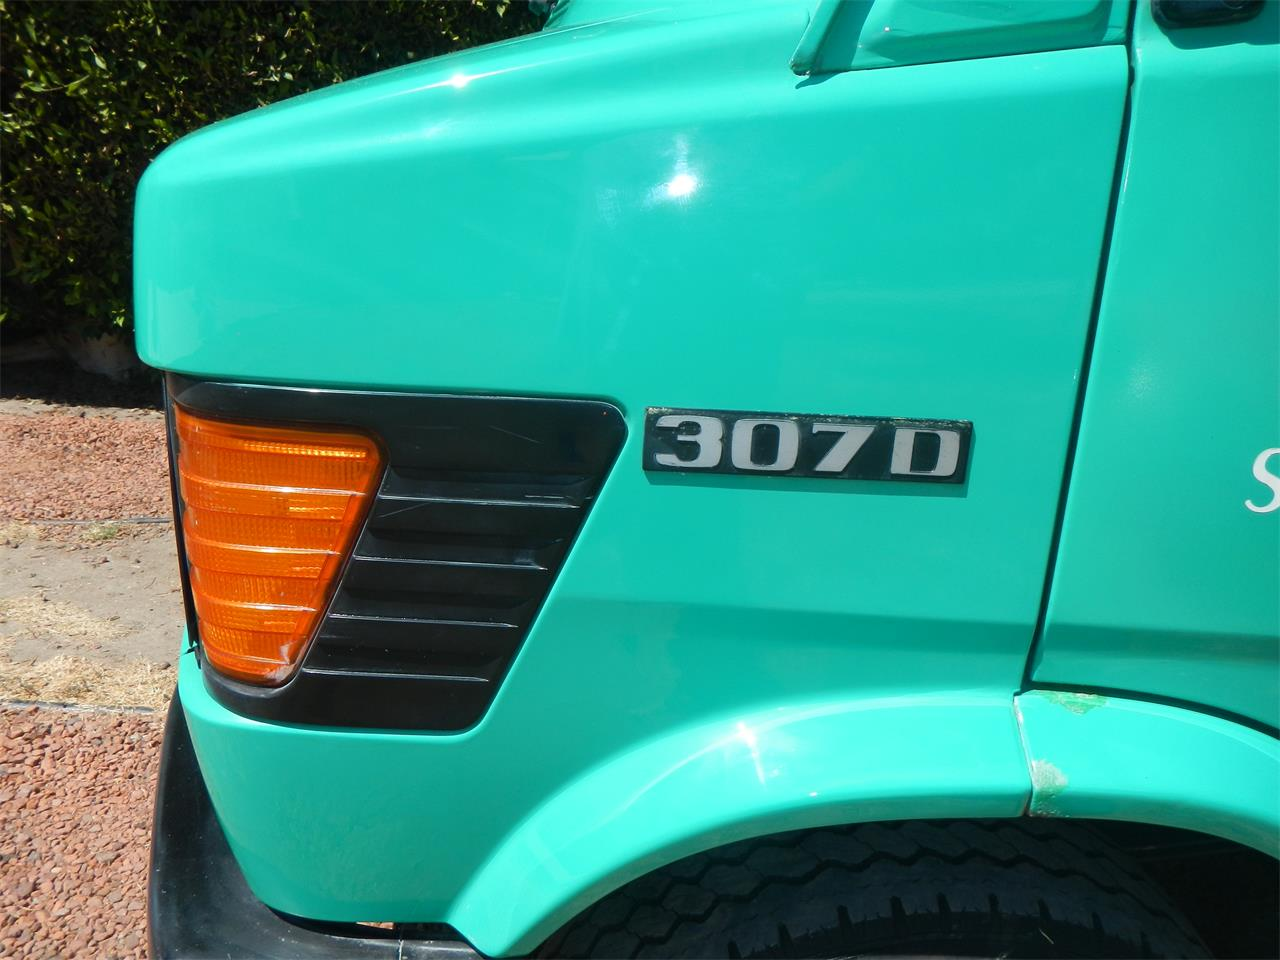 1986 Mercedes Benz 307D for sale in Woodland Hills, CA – photo 7